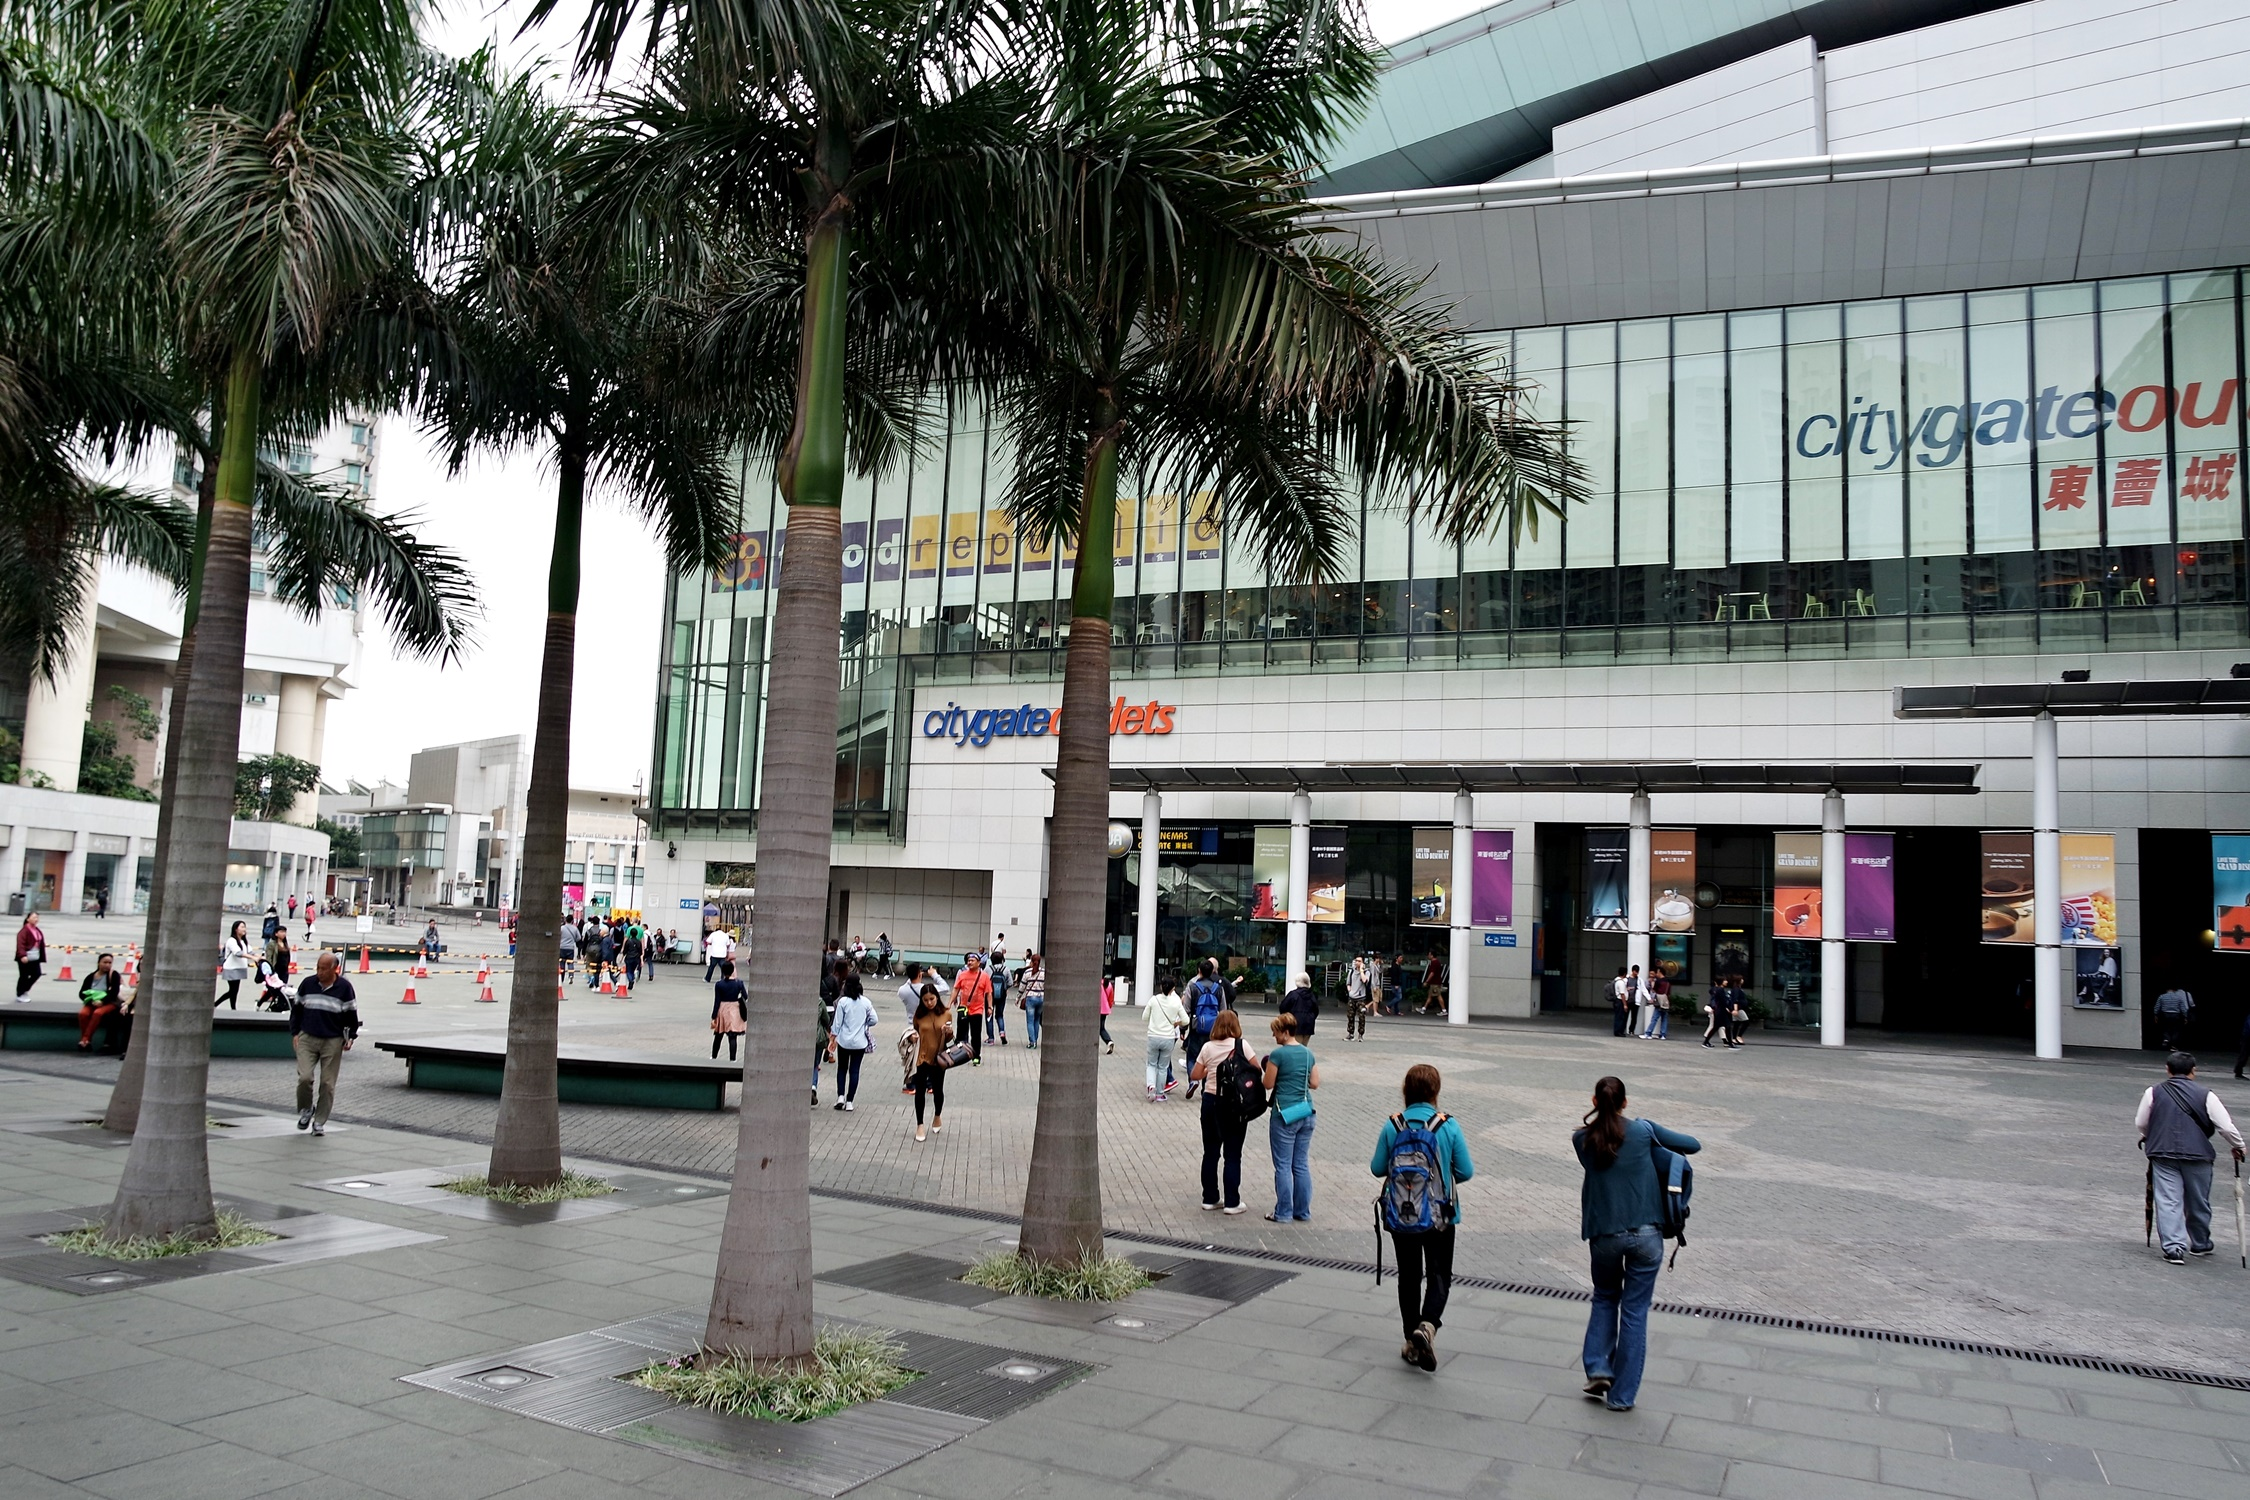 Citygate Outlets